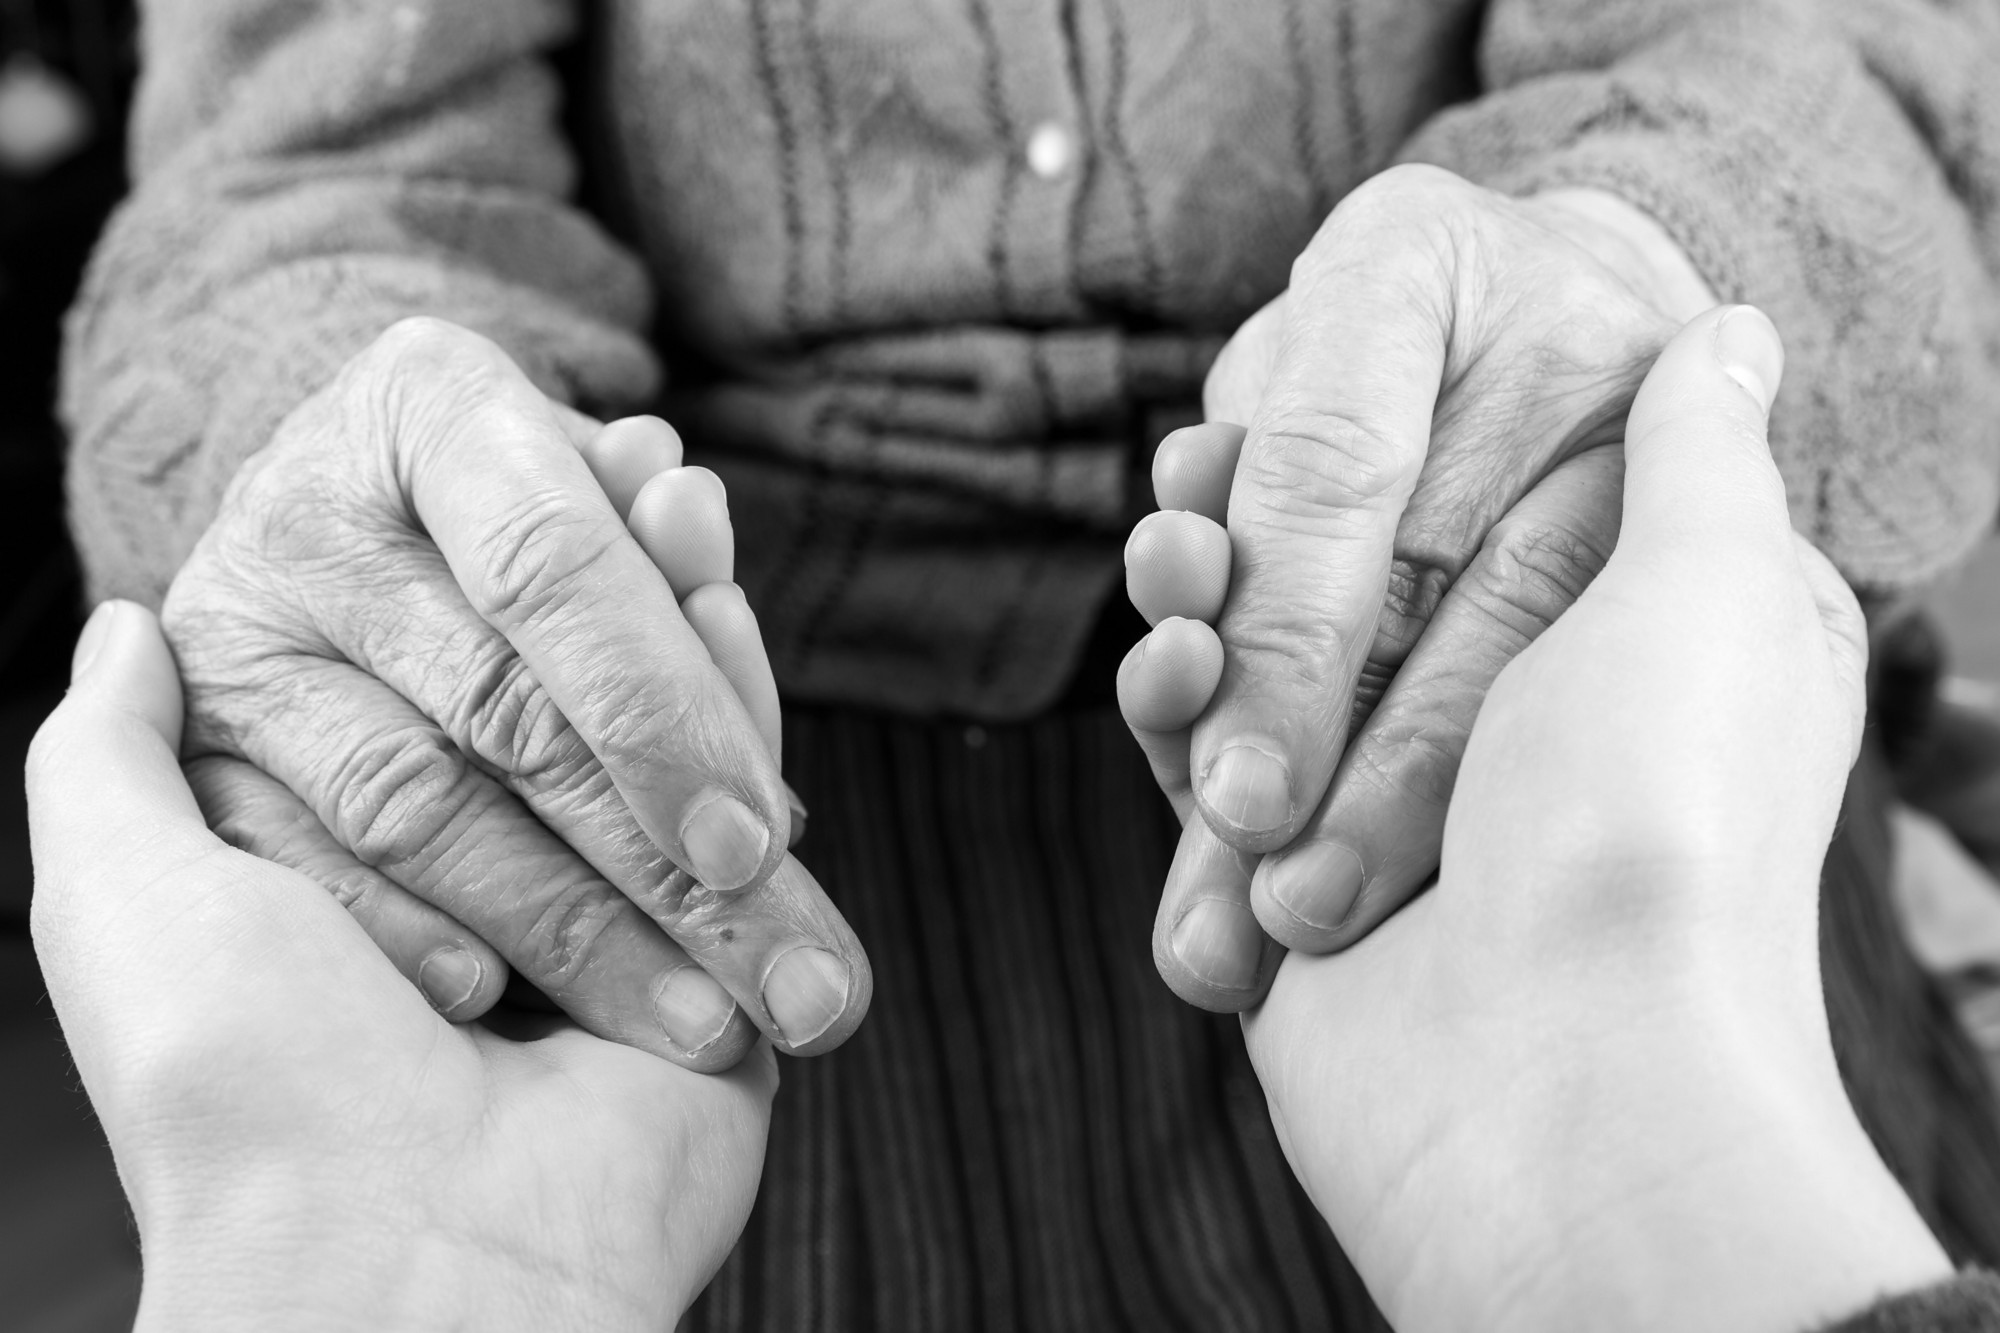 Hands of a young person holding those of  an older person. Photo by Obencem/Getty Images